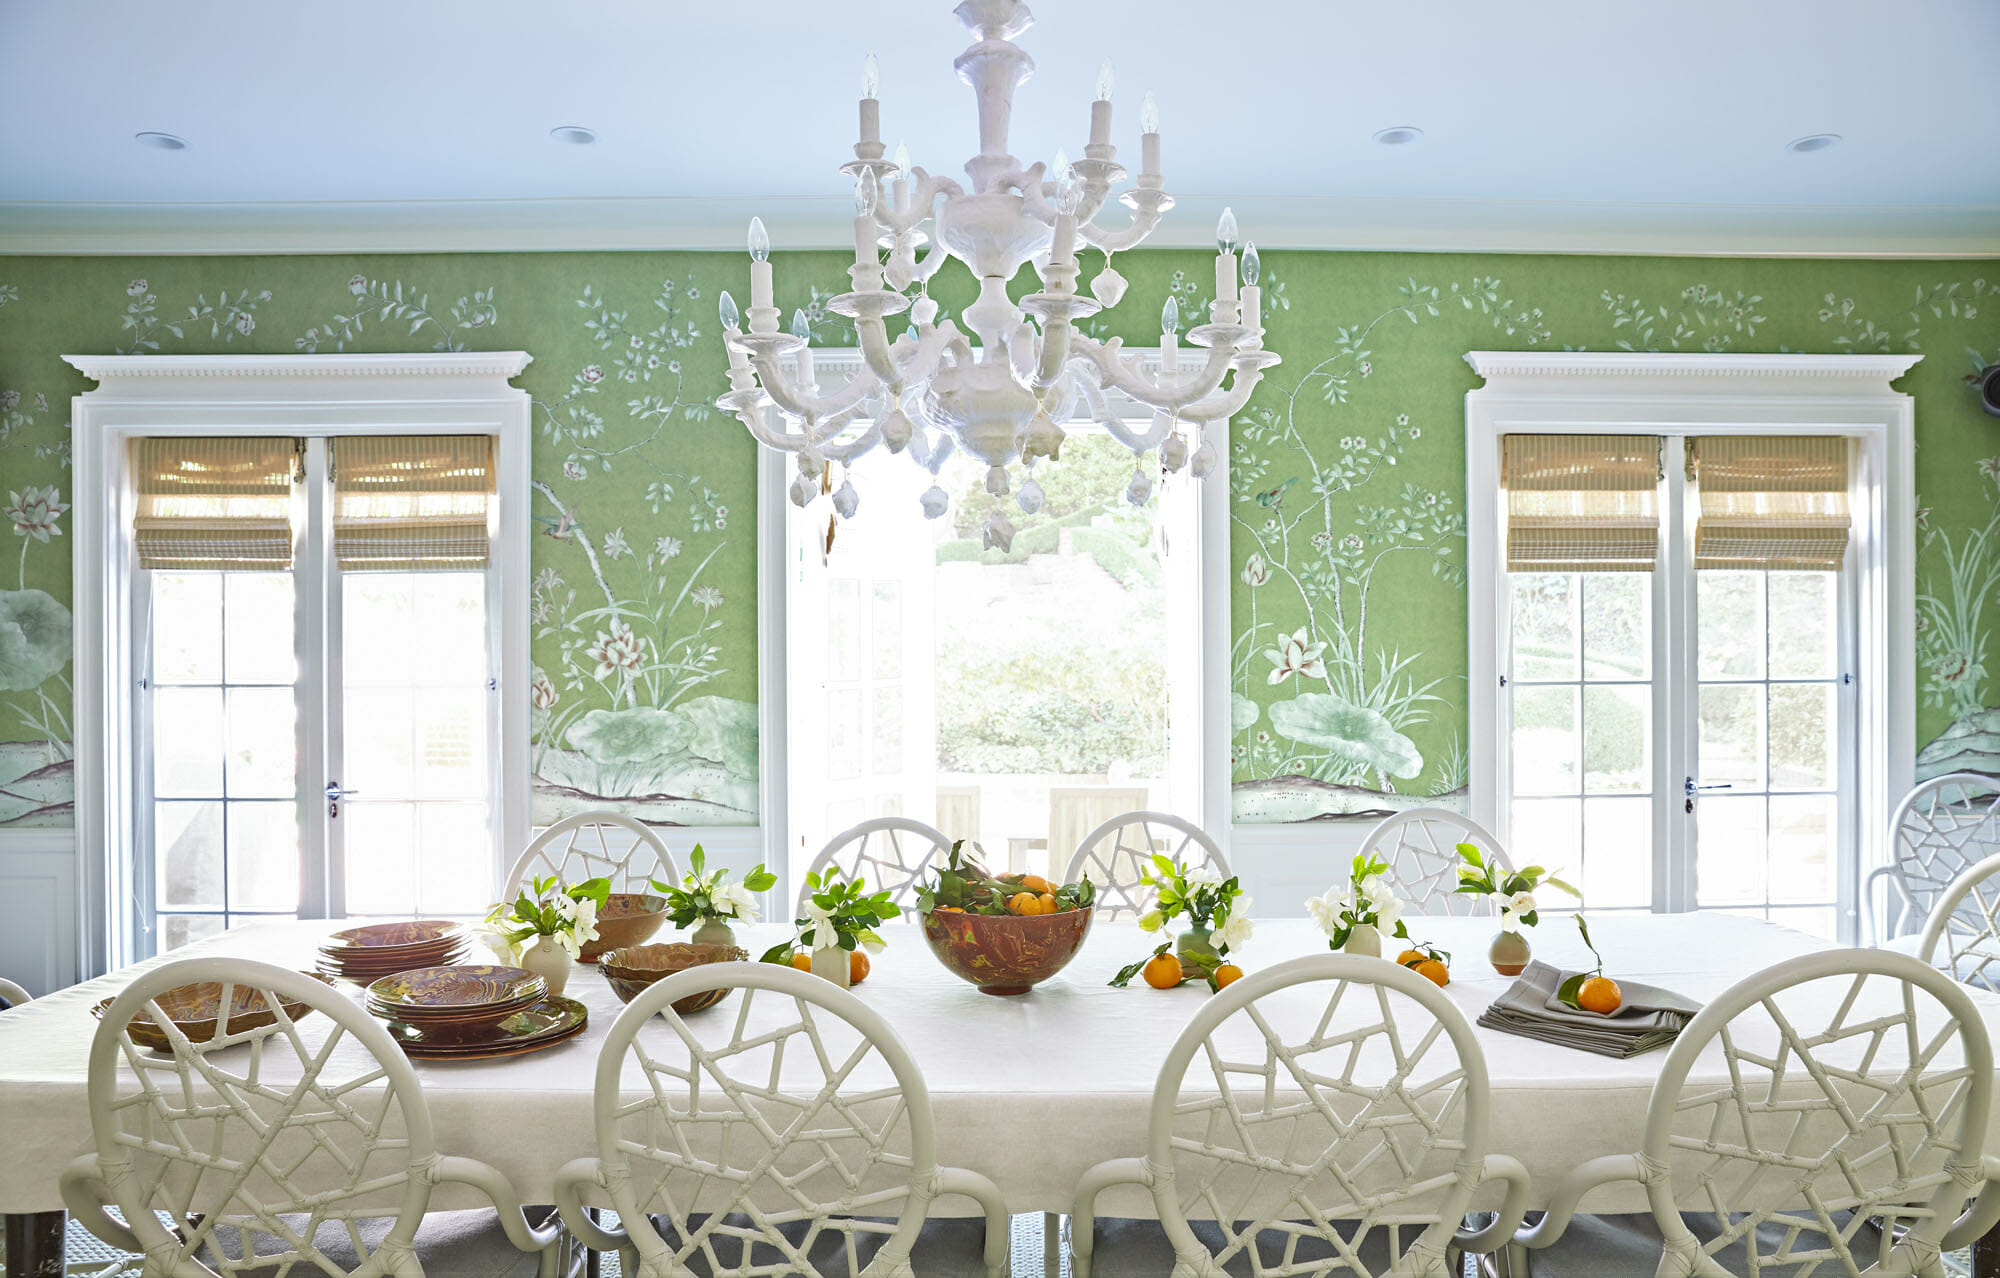 Color Of The Year 2017 By Pantone Is Greenery Dining Room